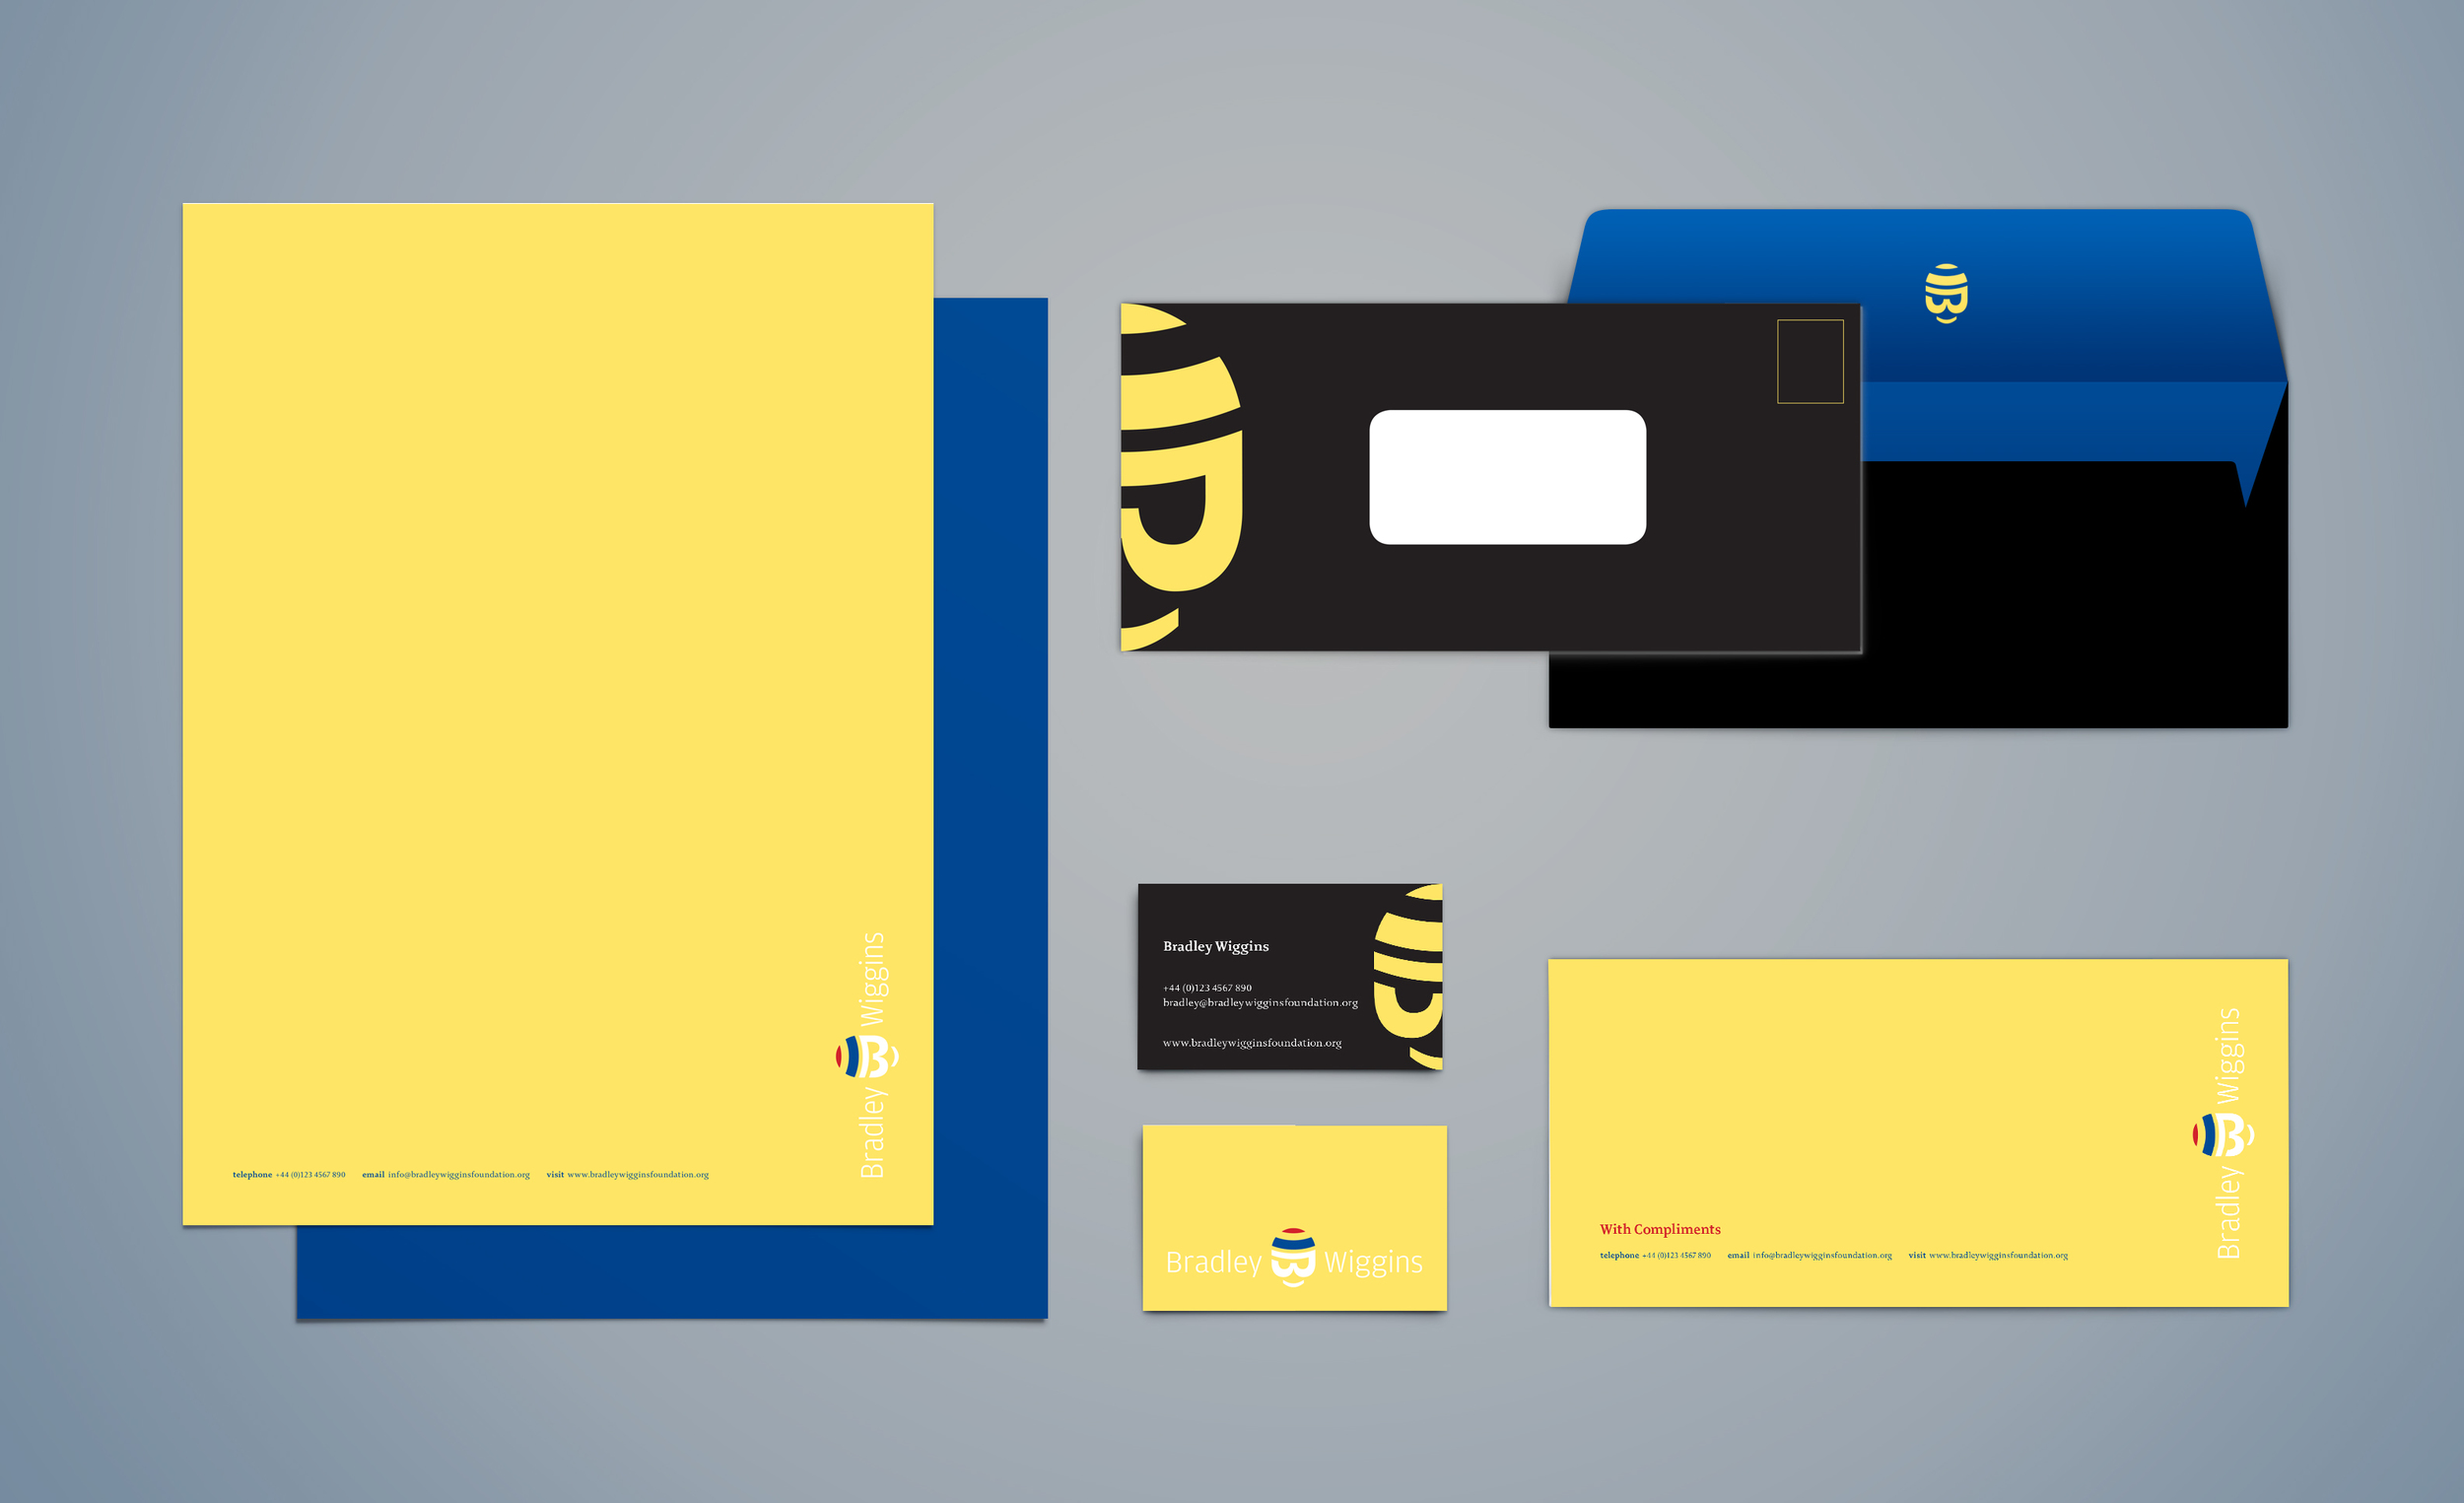 Bradley Wiggins branded stationary, including A4 letterhead, business cards, compliment slip and envelopes.